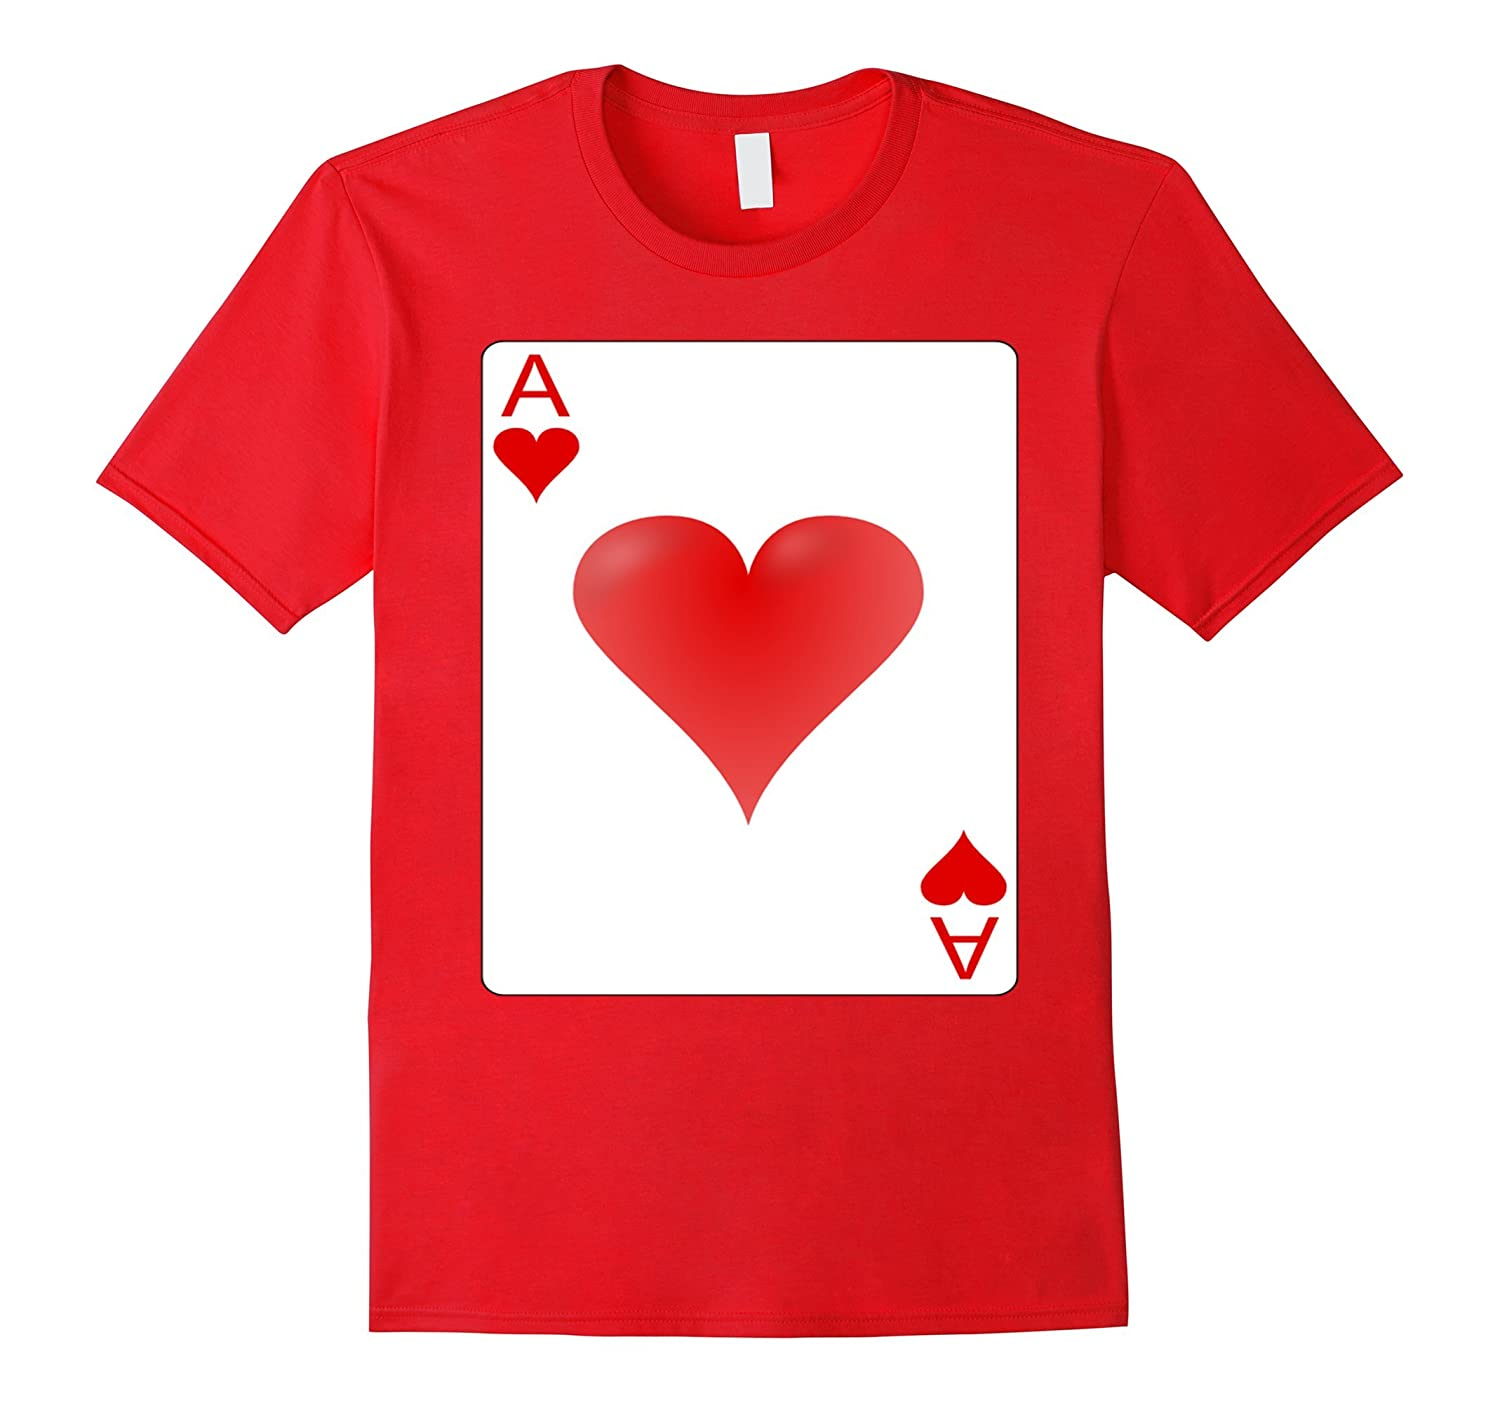 Ace of hearts playing card Halloween Group Costume T-shirt-FL